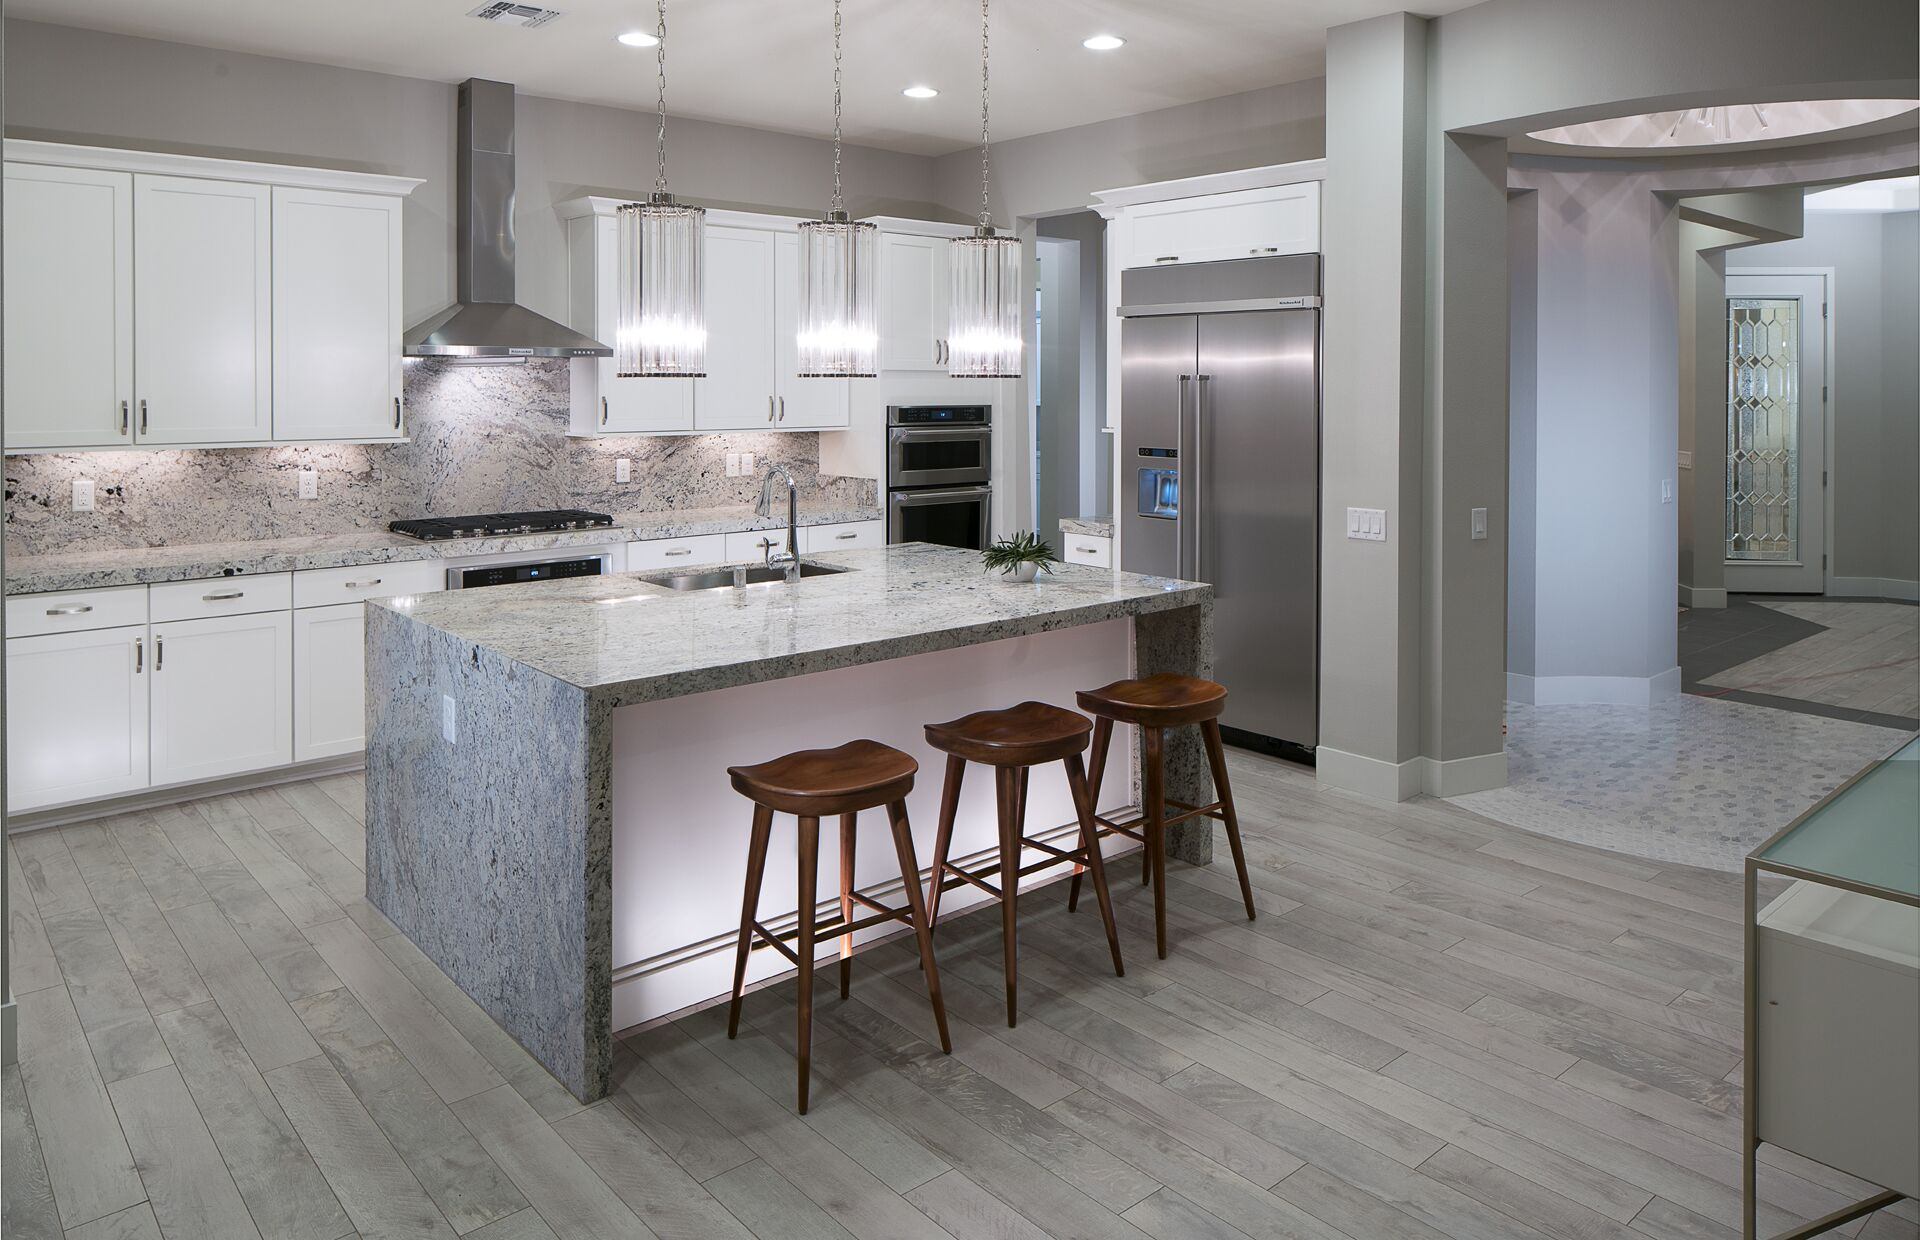 5 Kitchen Design Trends To Take From Model Homes Bridge Realty